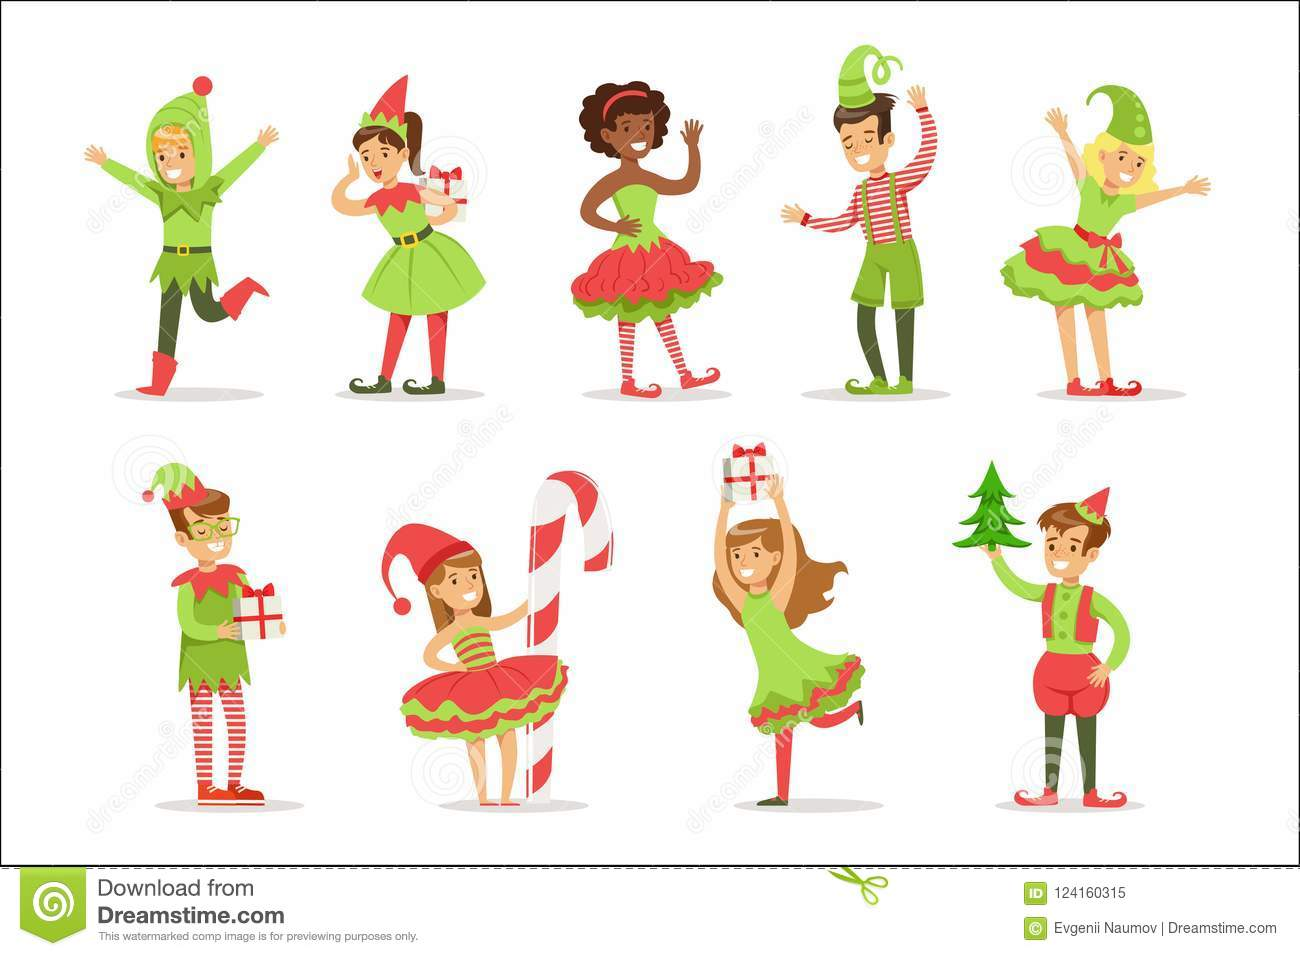 Christmas Carnival Theme Outfit.Children Dressed As Santa Claus Christmas Elves For The